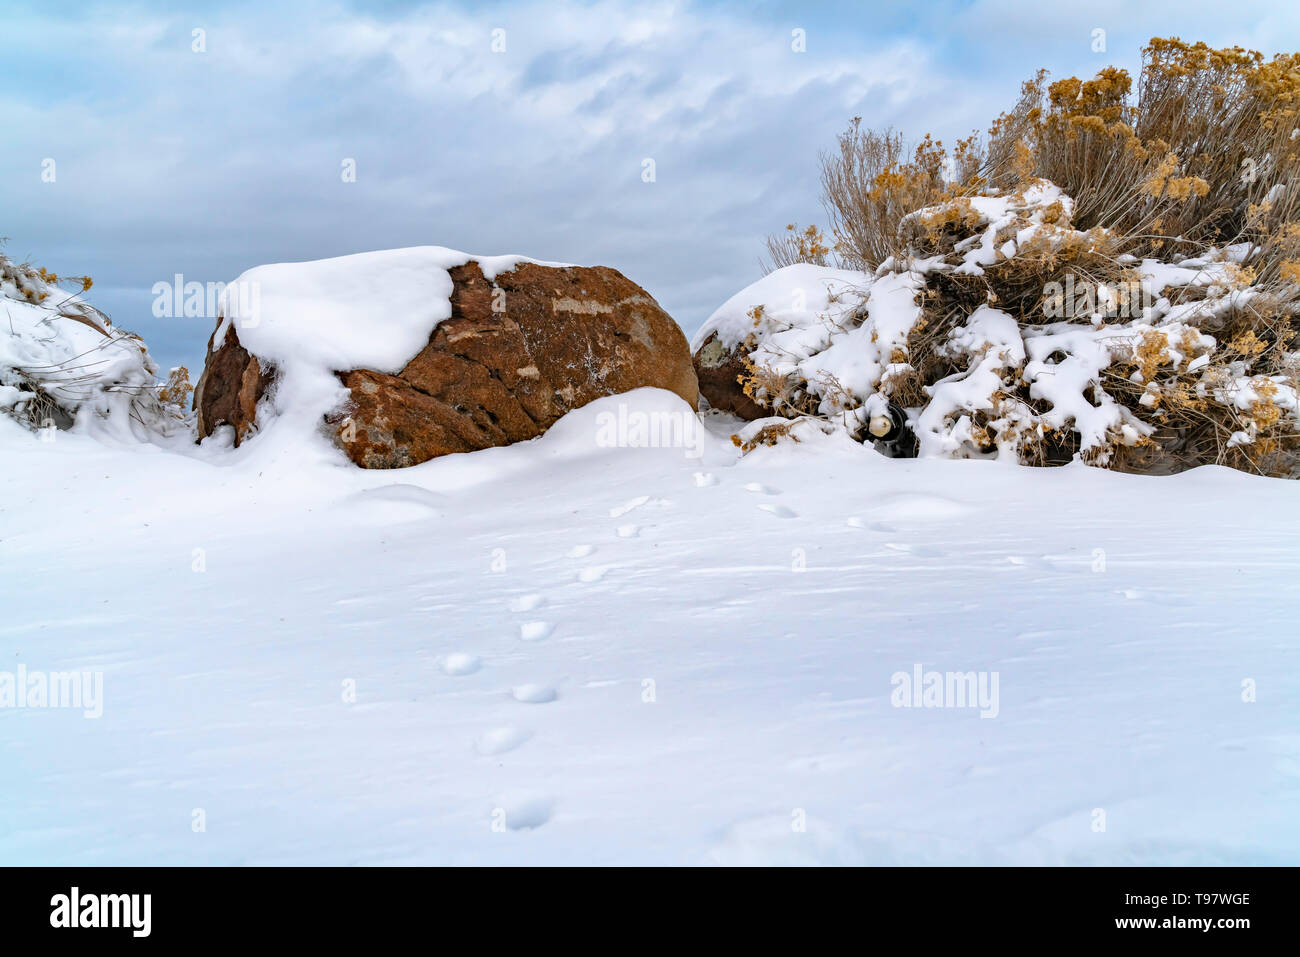 Animal tracks on snow covered ground viewed on a frosty winter day - Stock Image